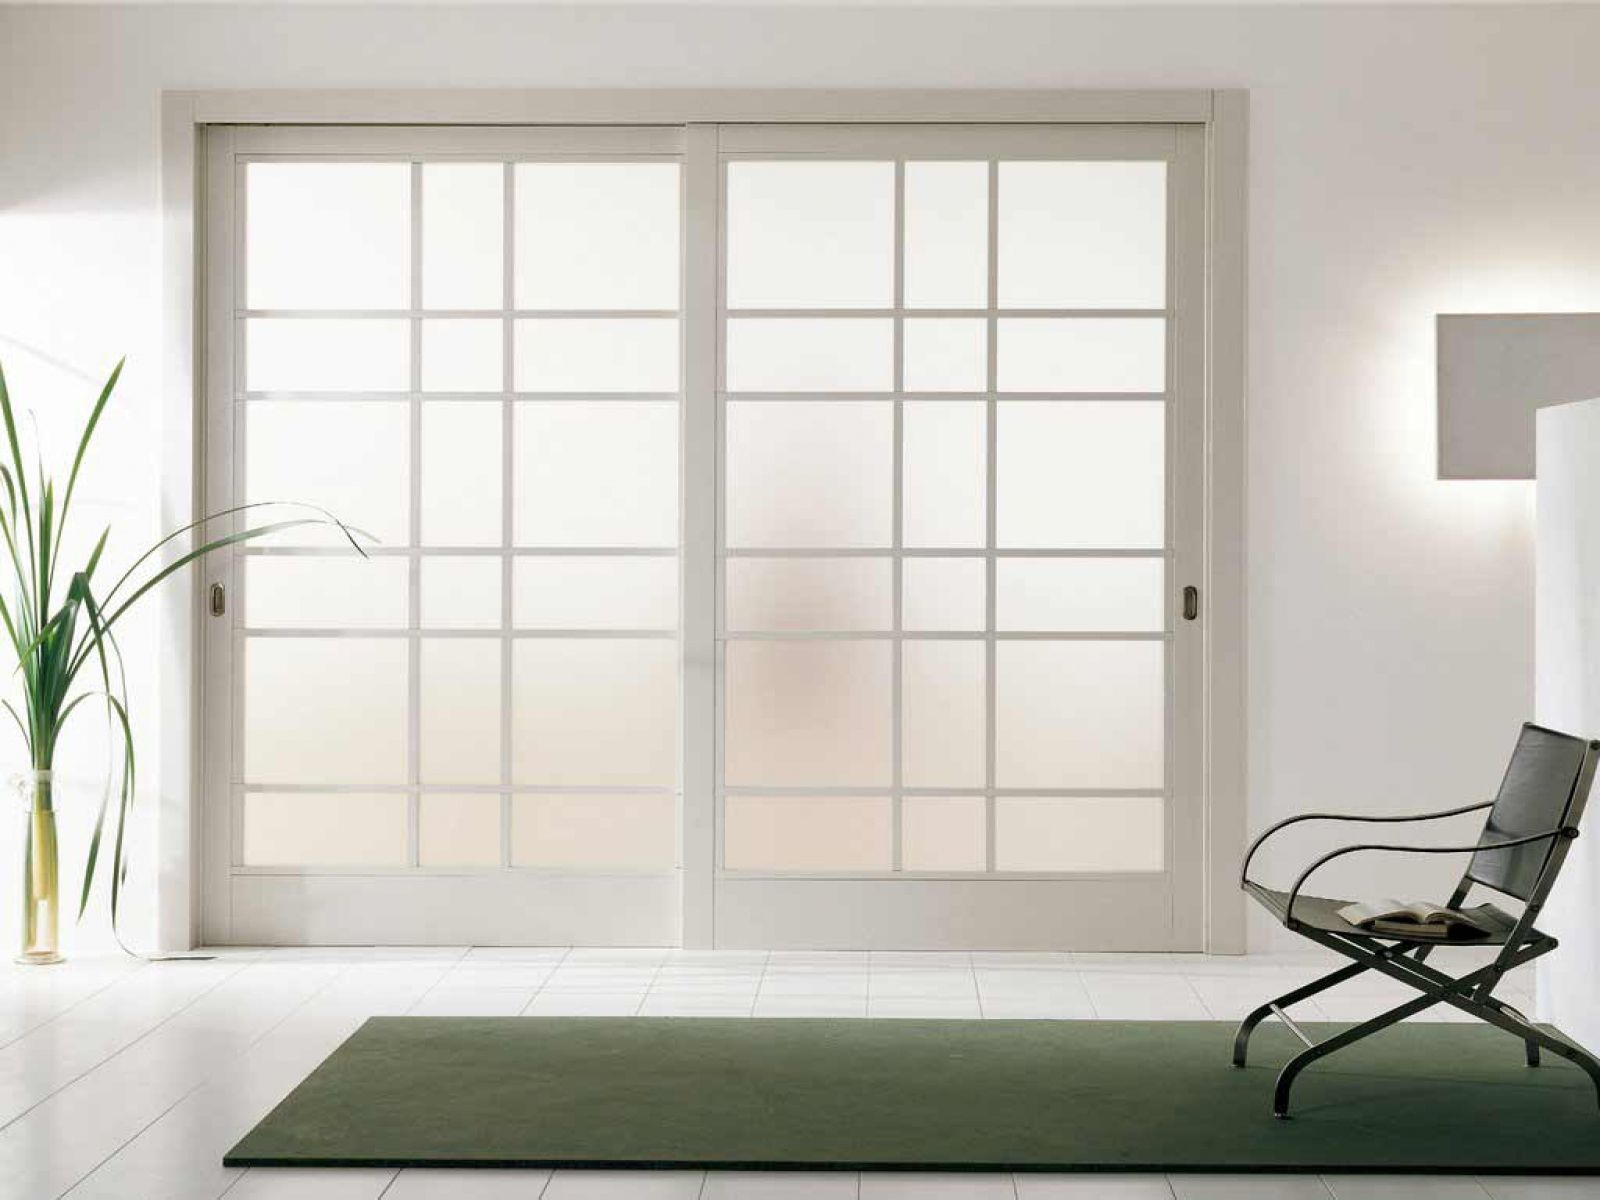 Lovely Sliding Room Dividers Dividers Frosted Glass Image And